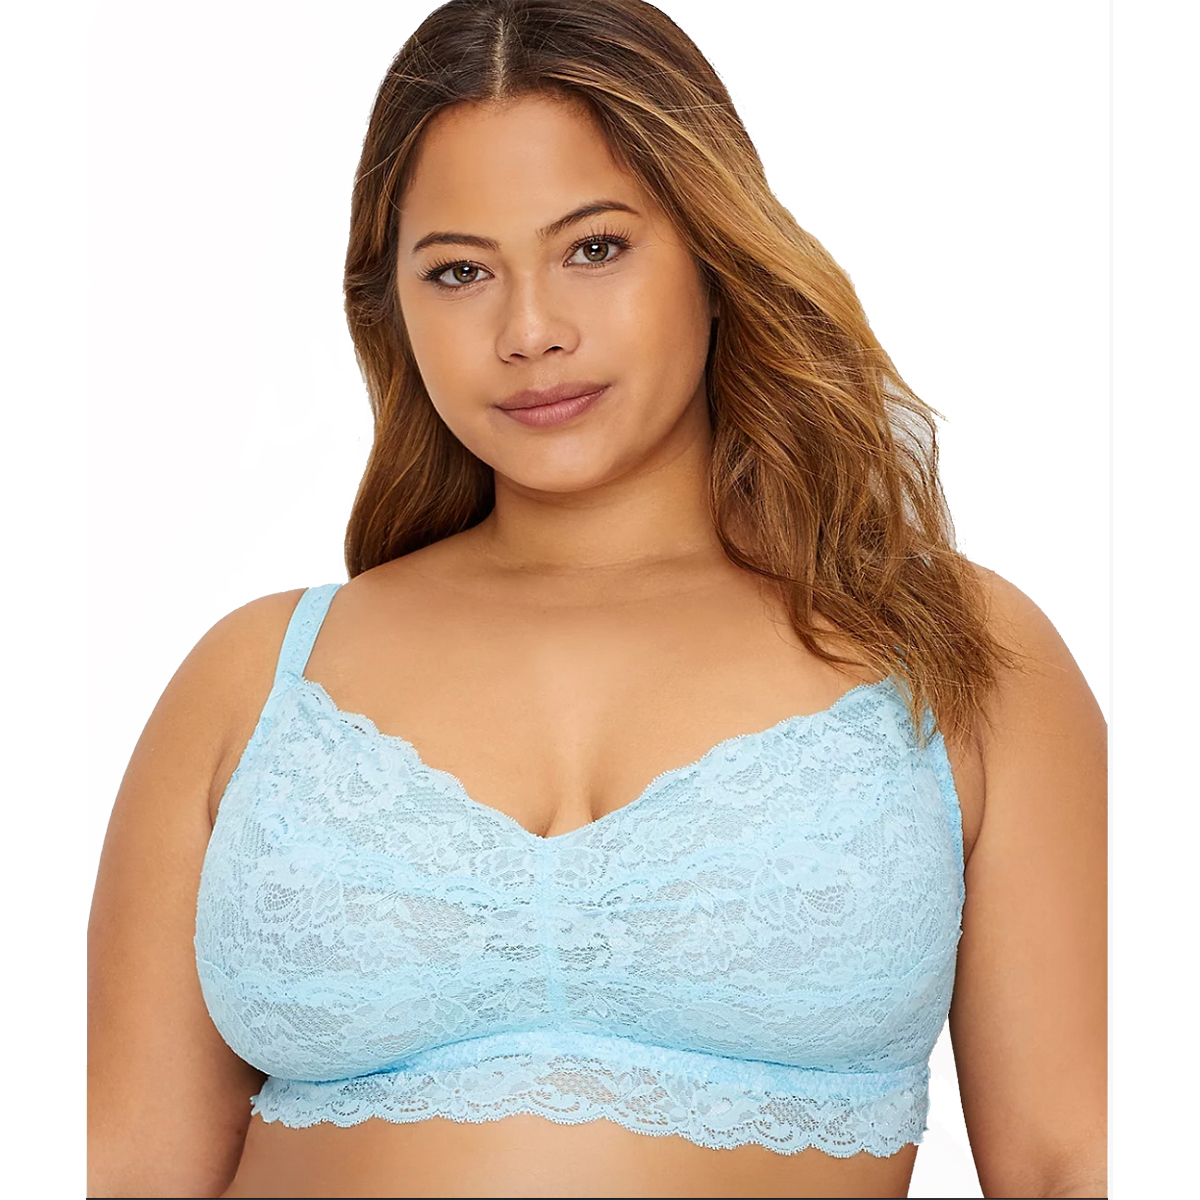 Best Bralette: Cosabella Plus-Size Never Say Never Sweetie Bralette